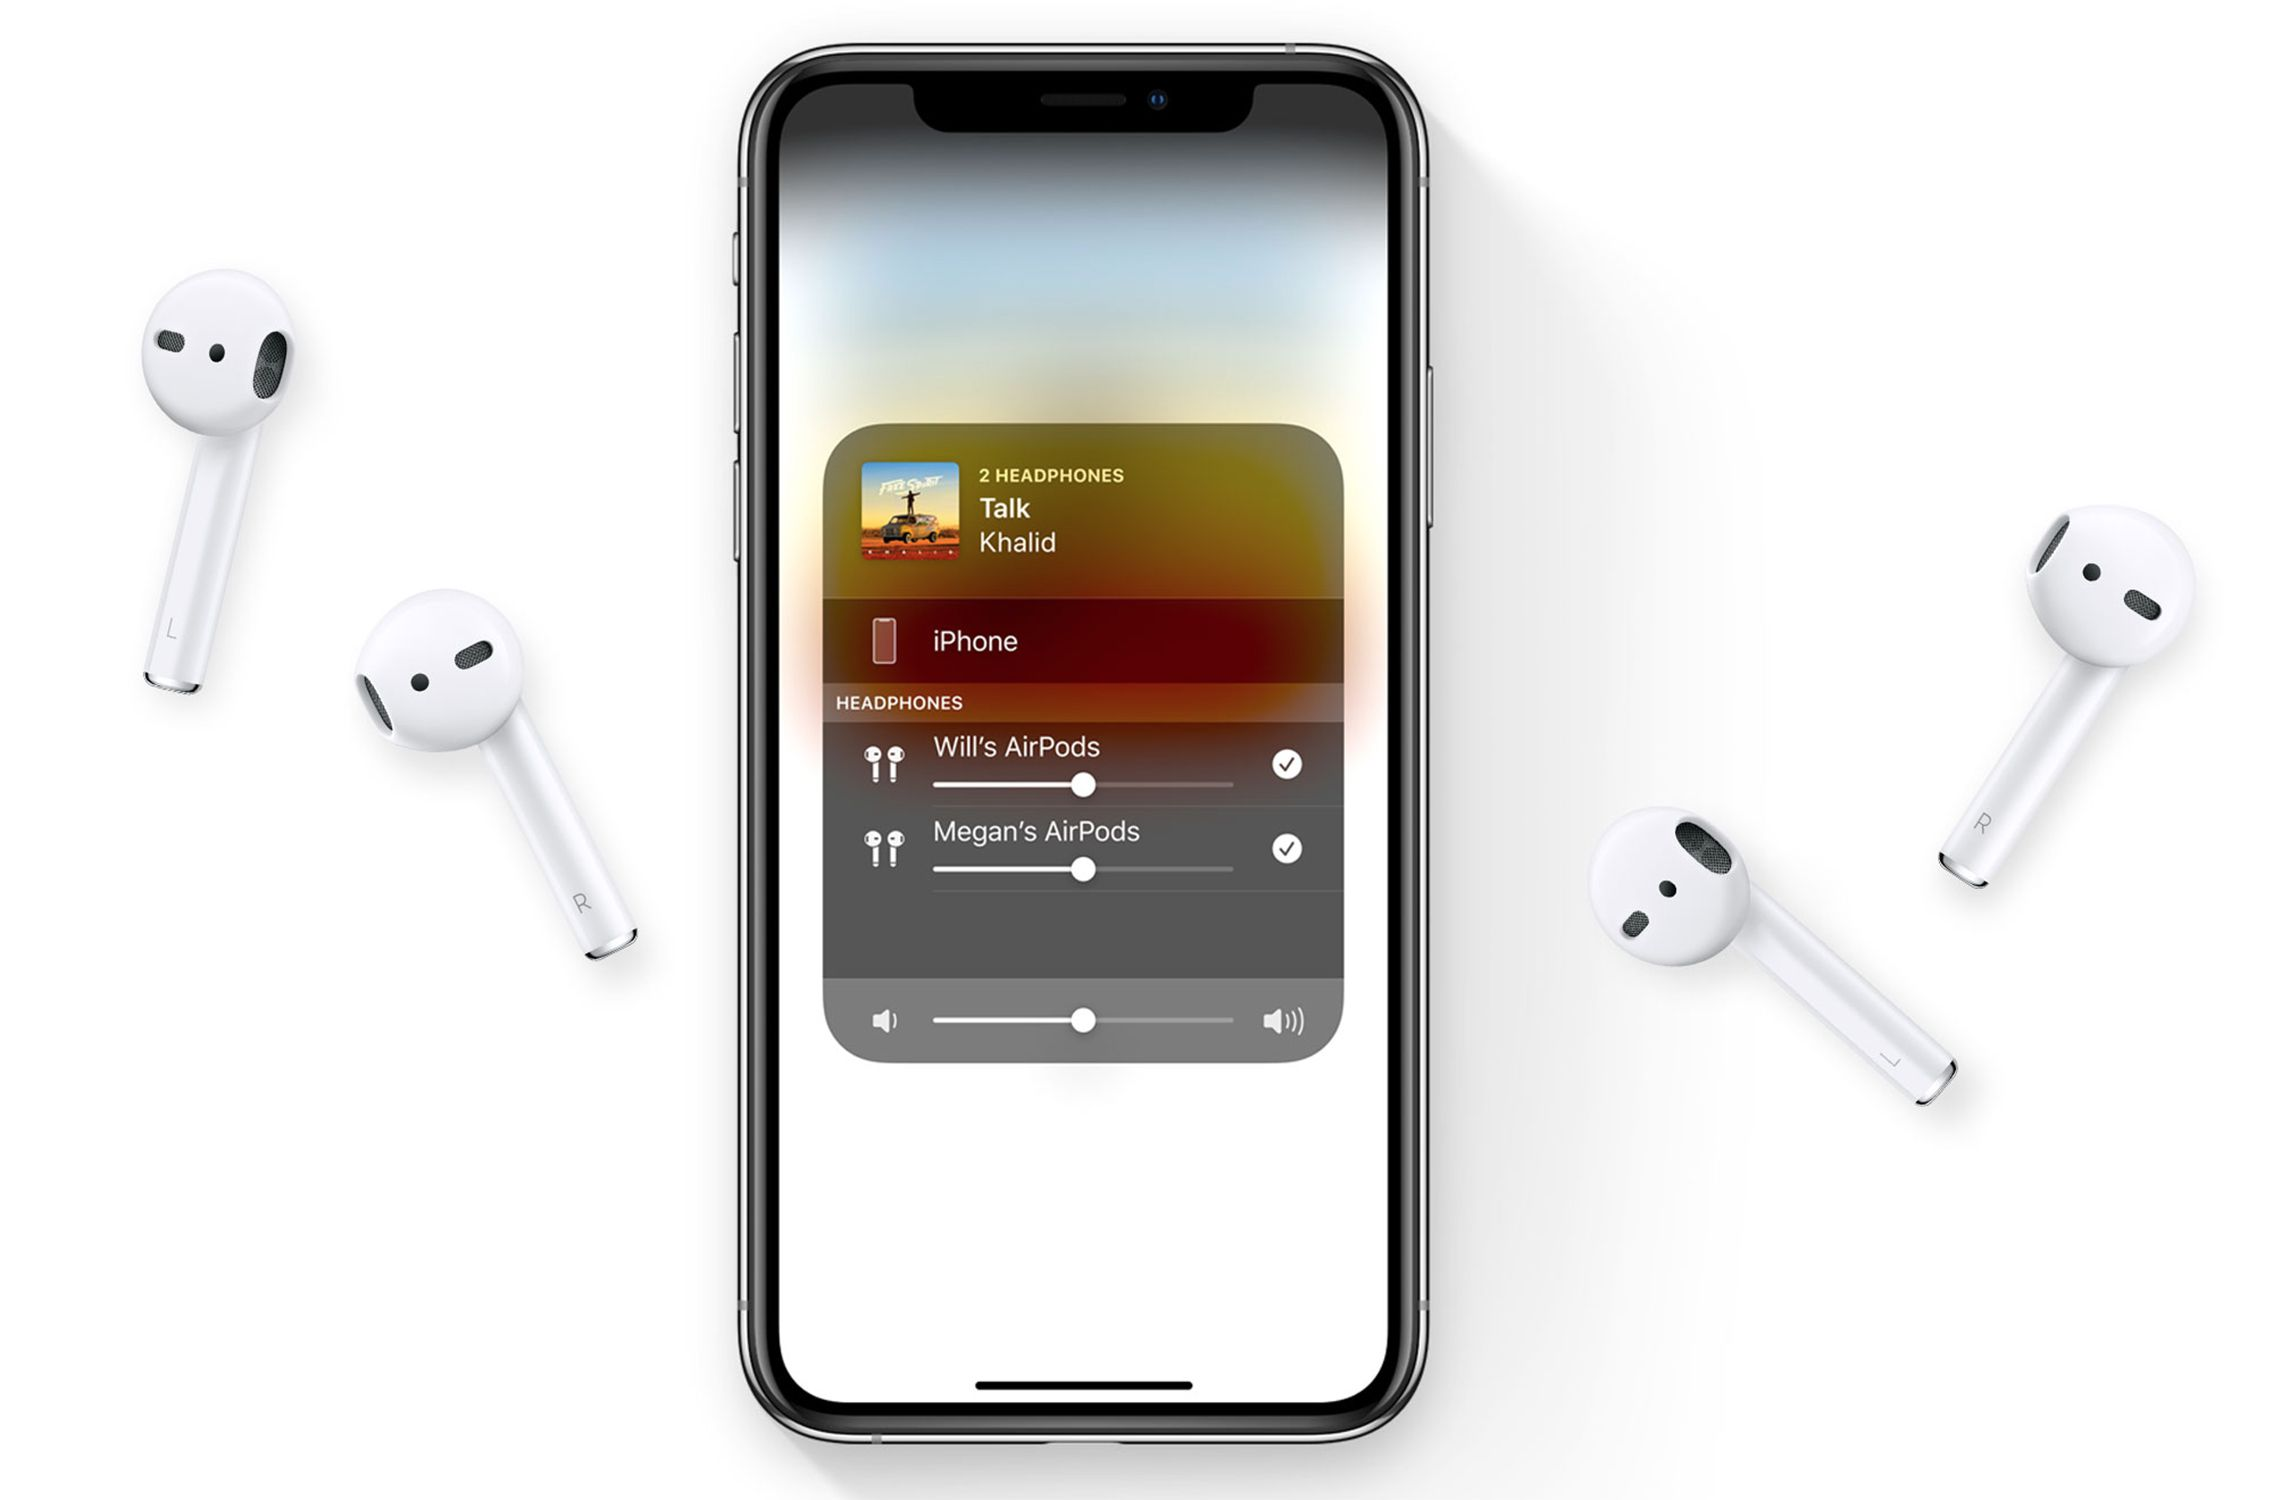 An iPhone sharing audio to 2 sets of AirPods